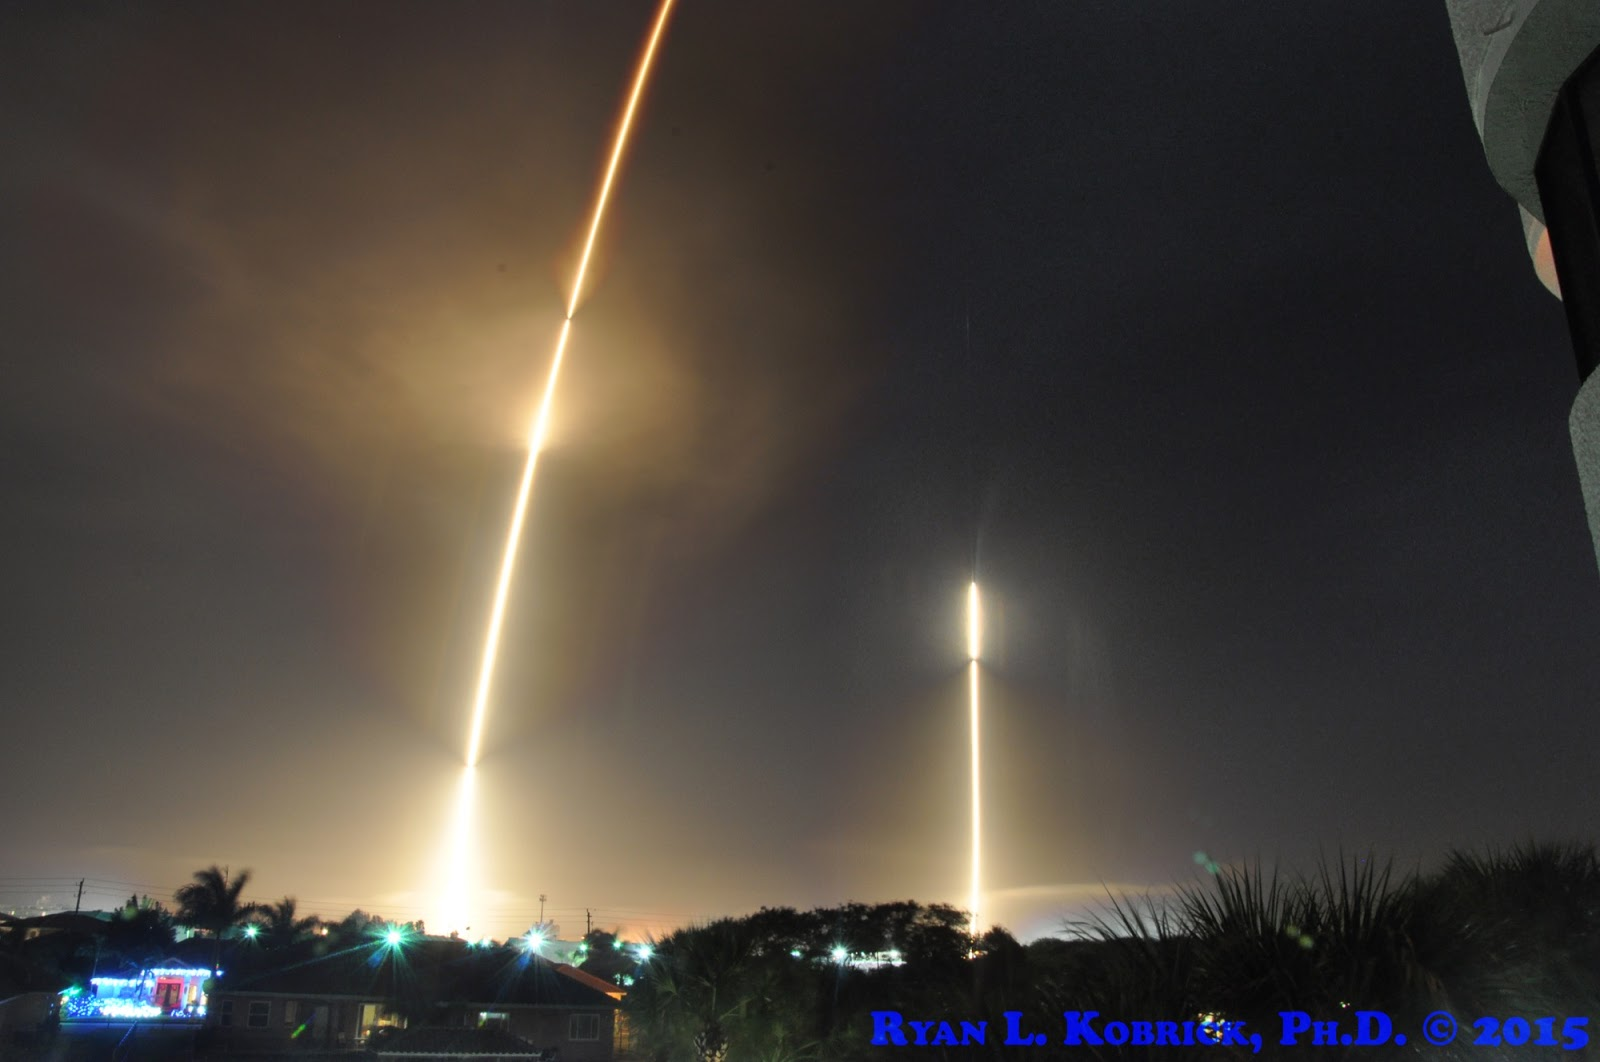 the falcon 9 rocket streaks to space on the left and 8 10 minutes later on the right it s first stage returns to earth for a safe landing